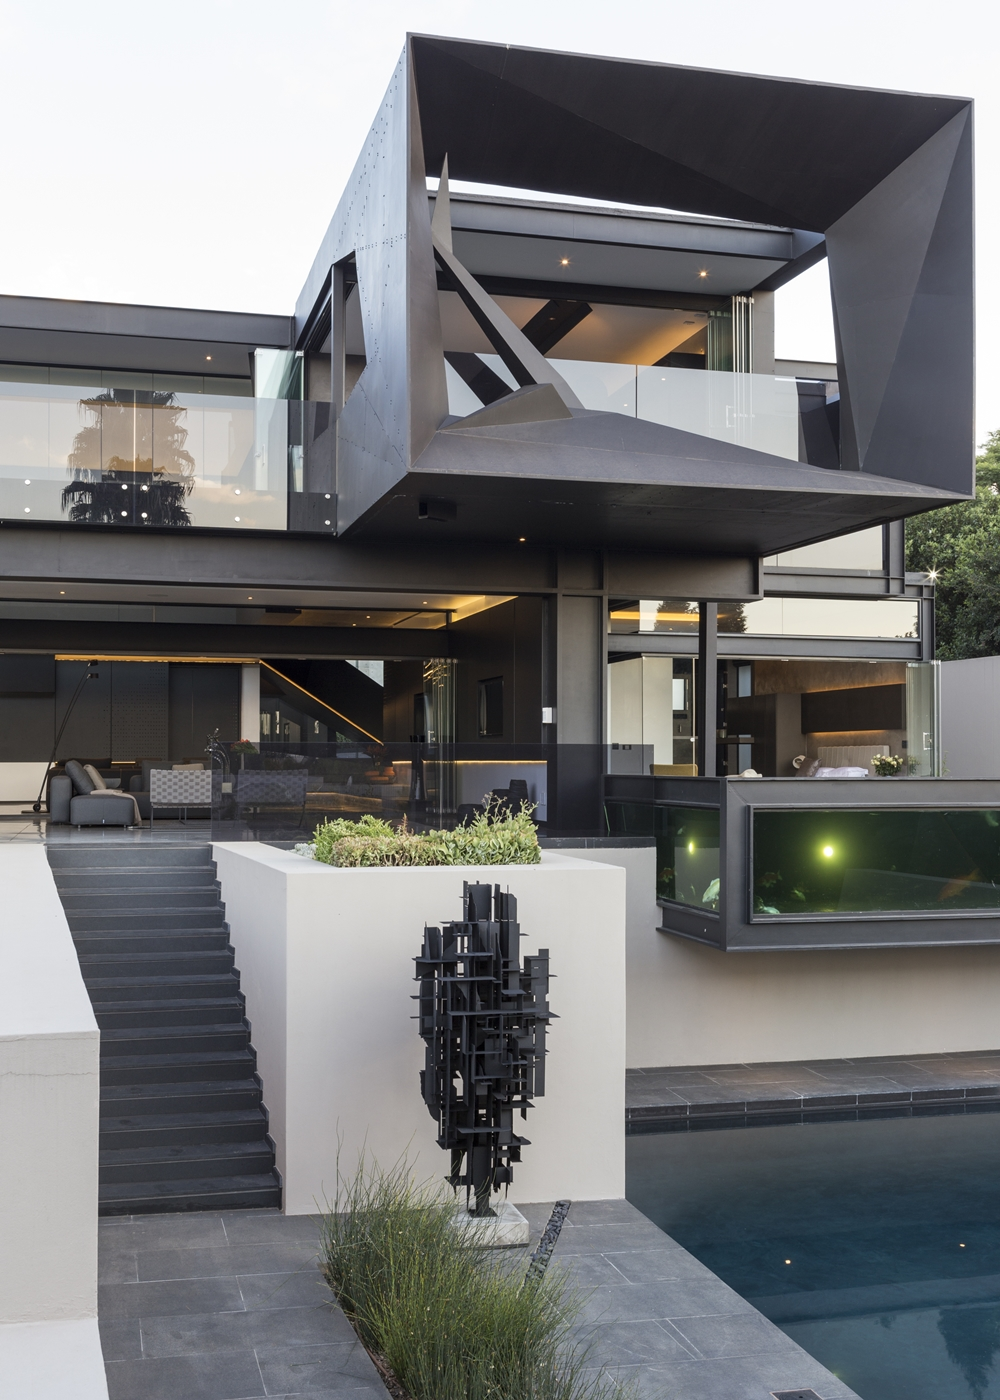 Best houses in the world amazing kloof road house World best design house